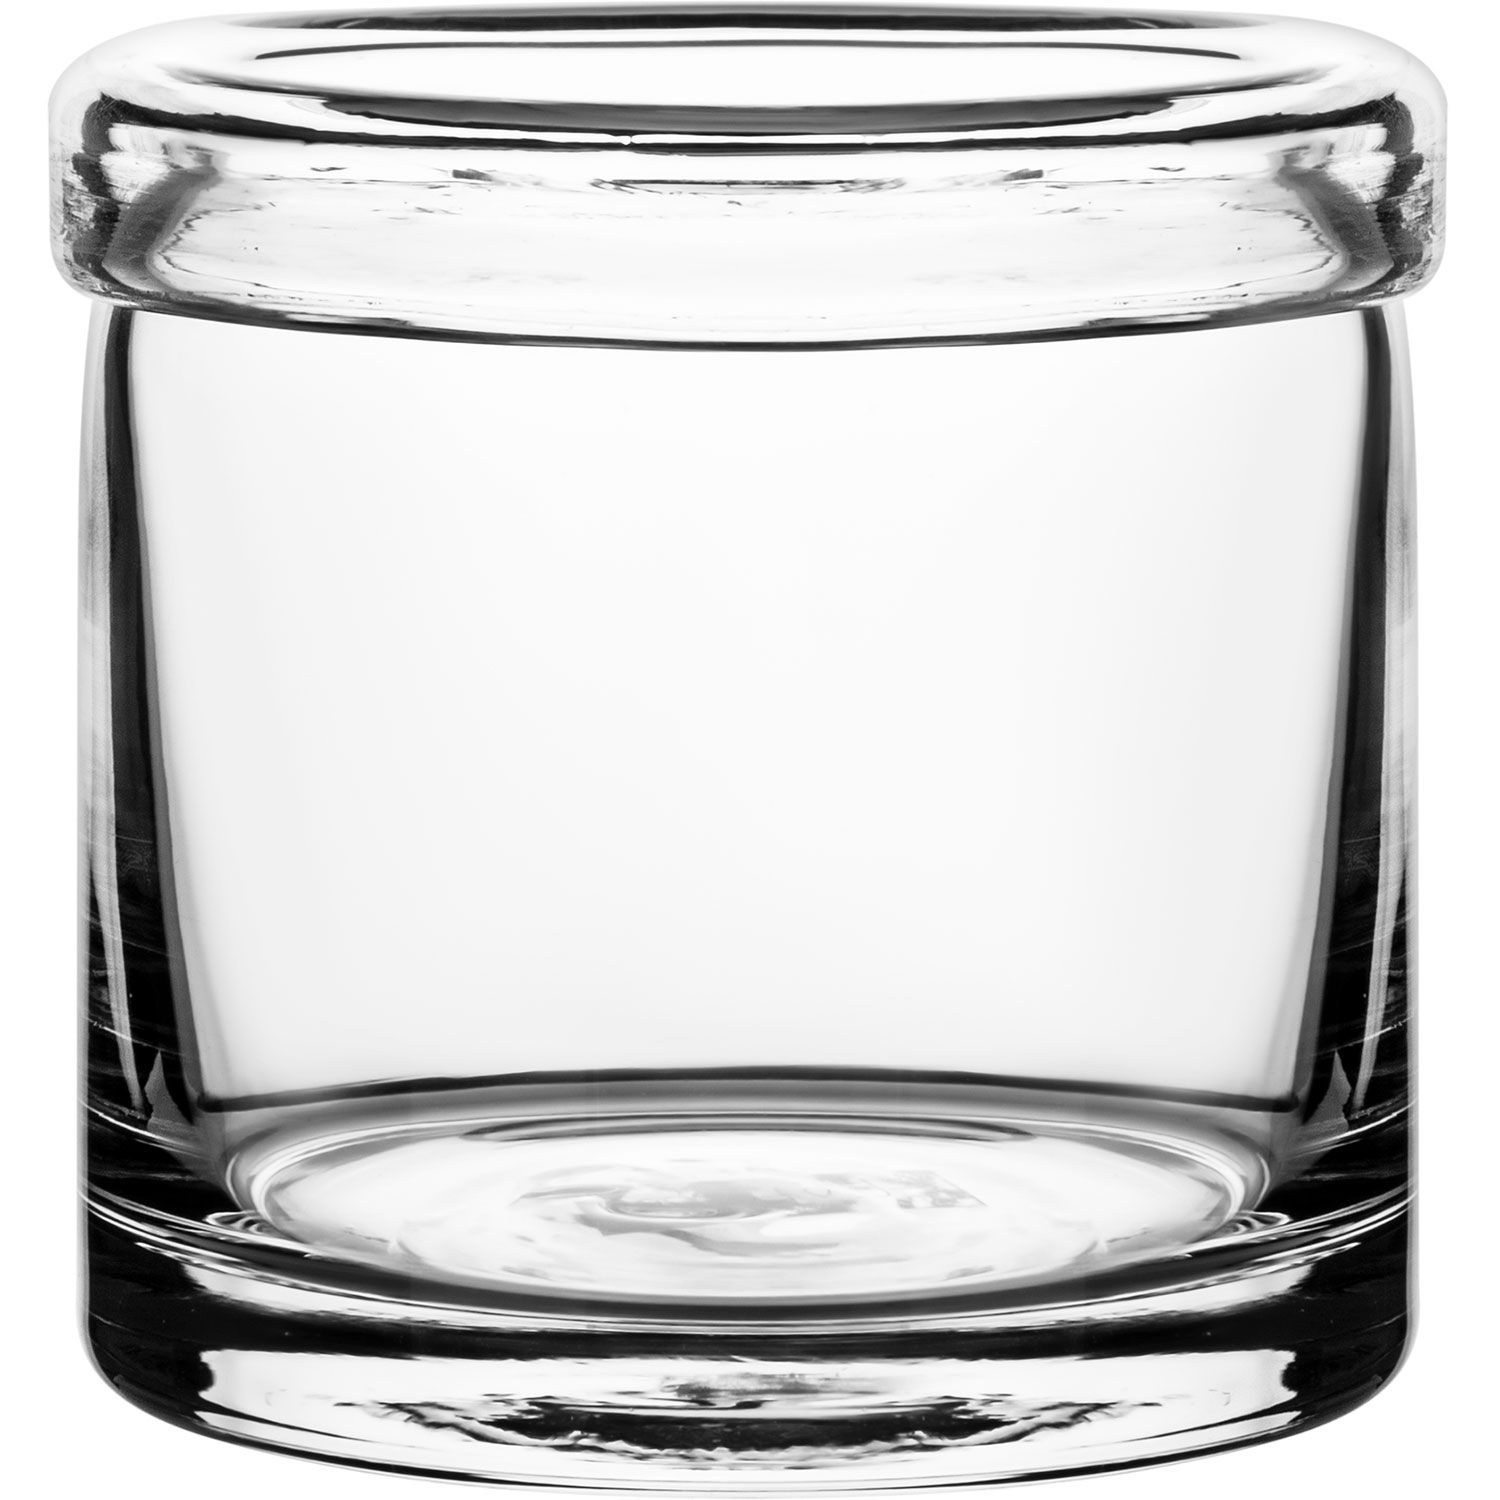 Storage jar from Ernst, made of glass.